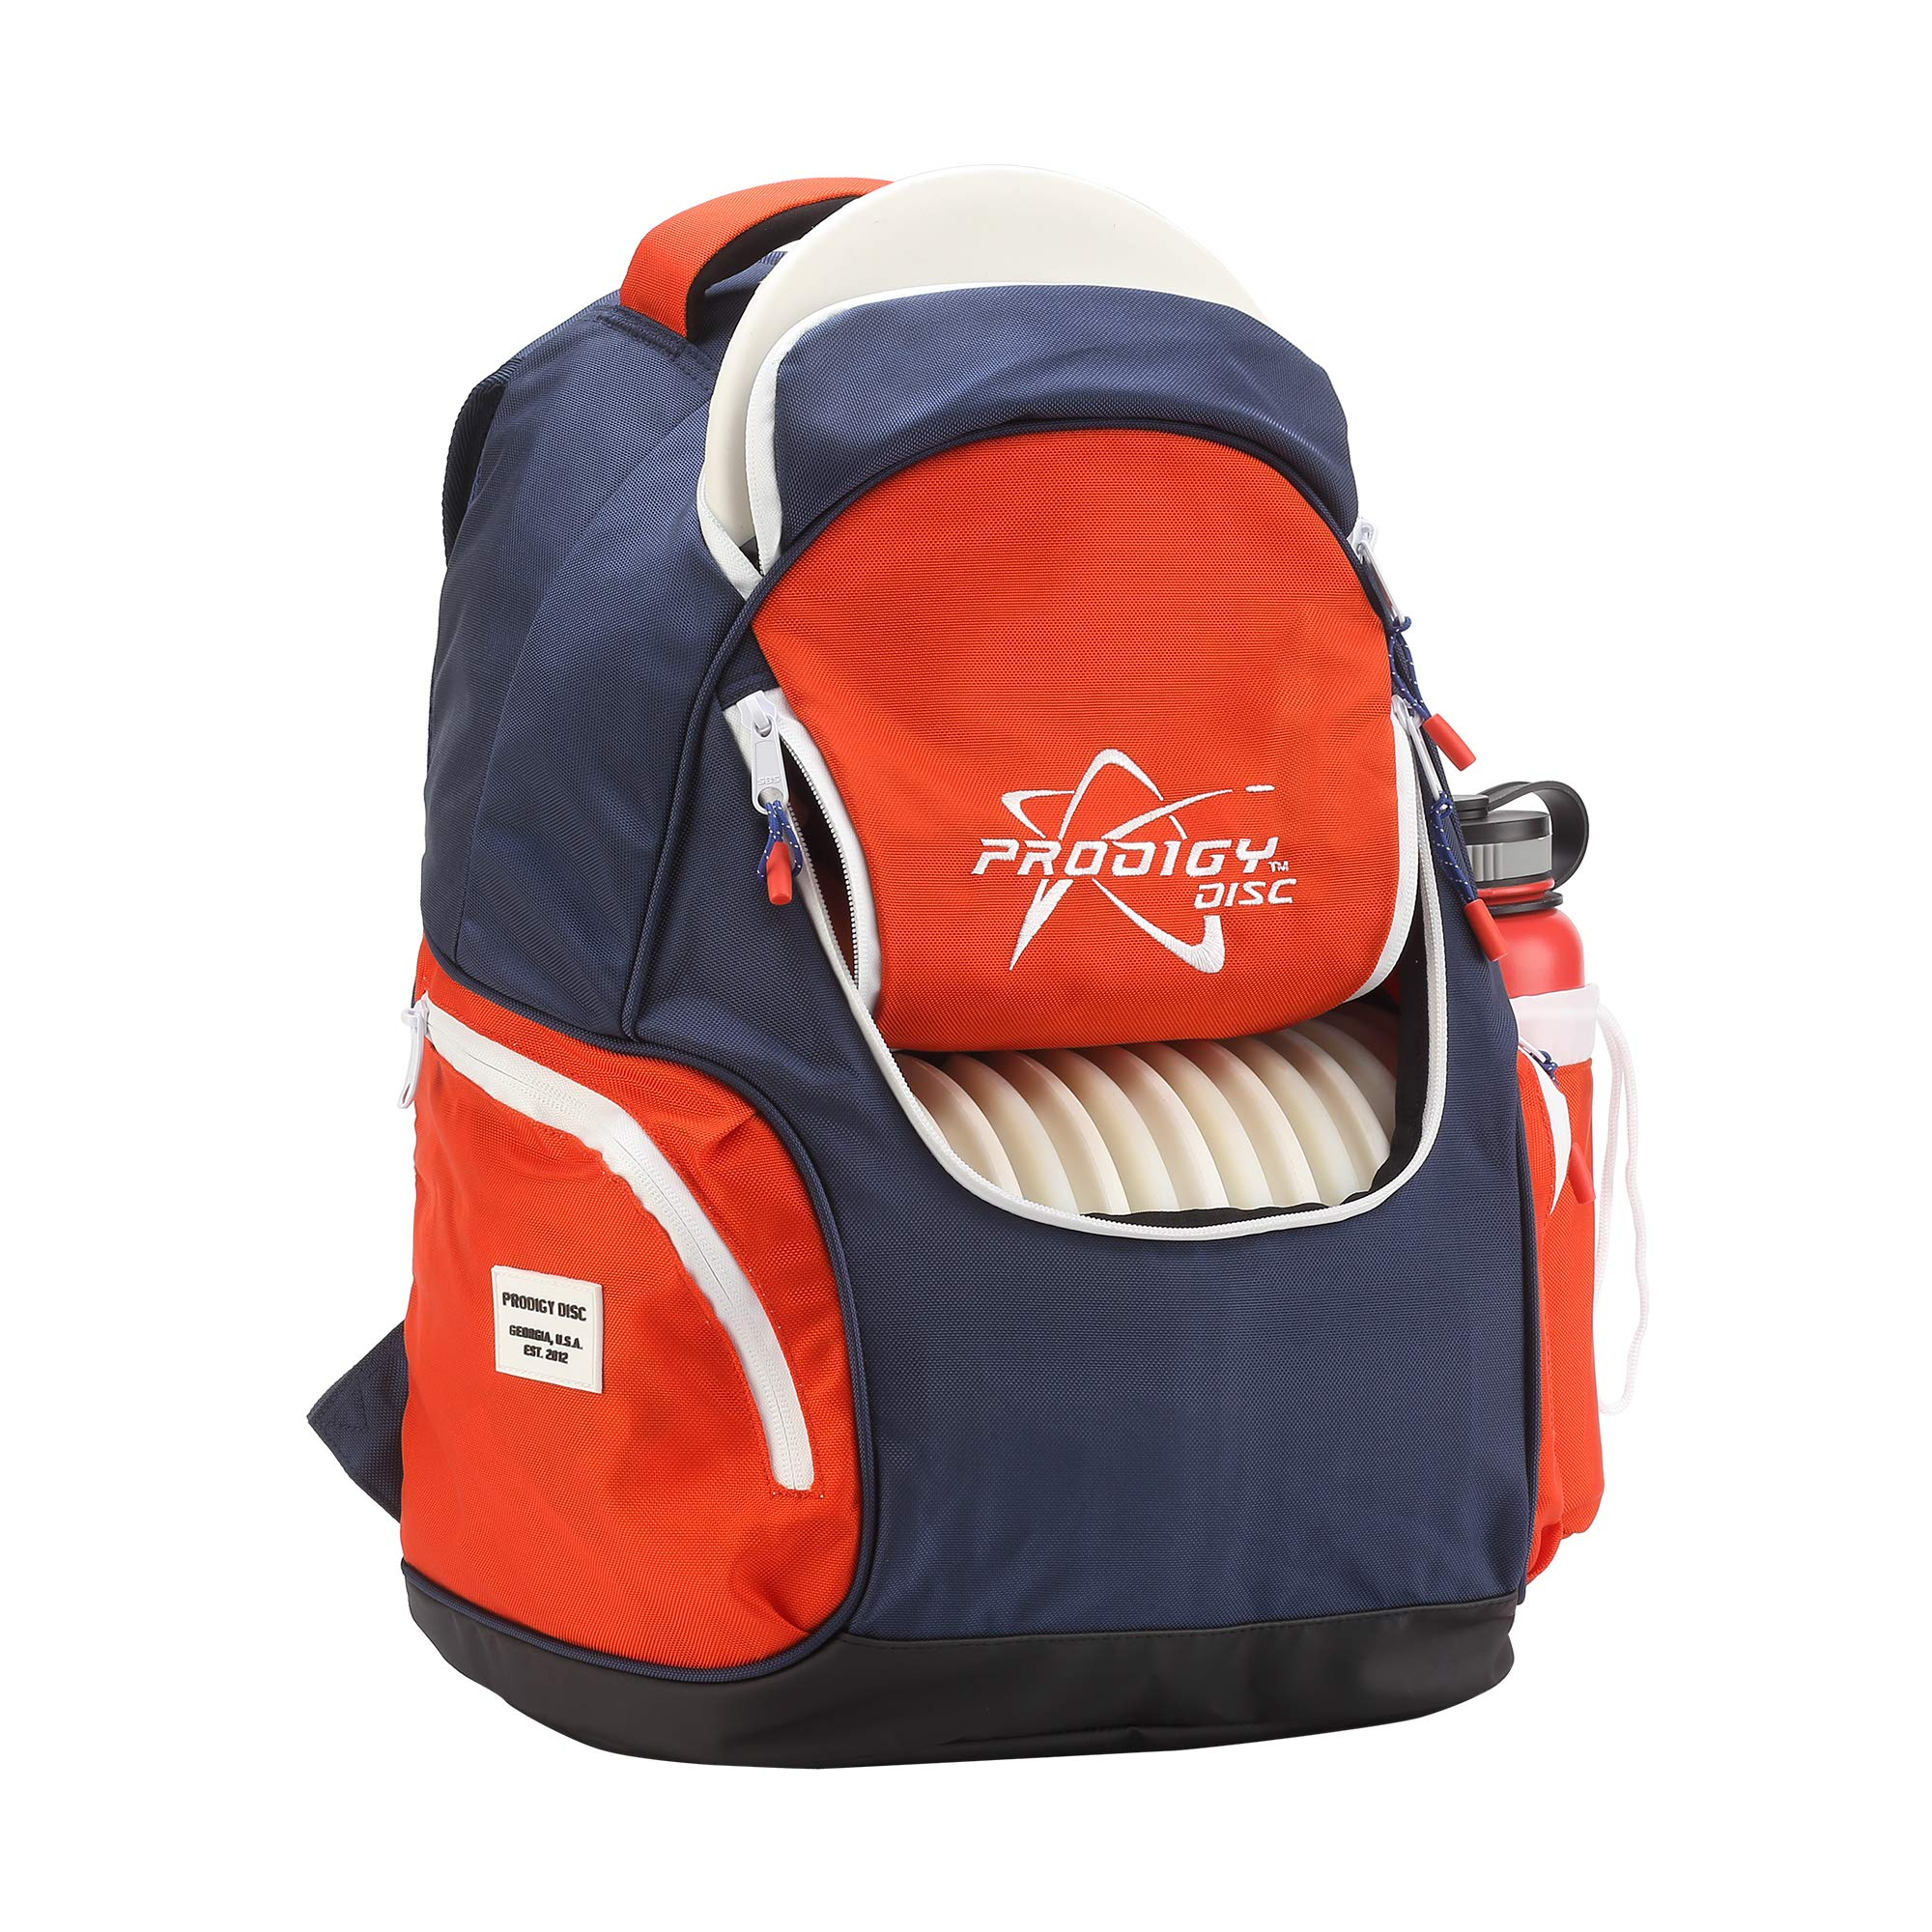 Prodigy Disc BP-3 V2 Disc Golf Backpack - Fits 17 Discs - Beginner Friendly, Affordable (Blue/Red) by Prodigy Disc